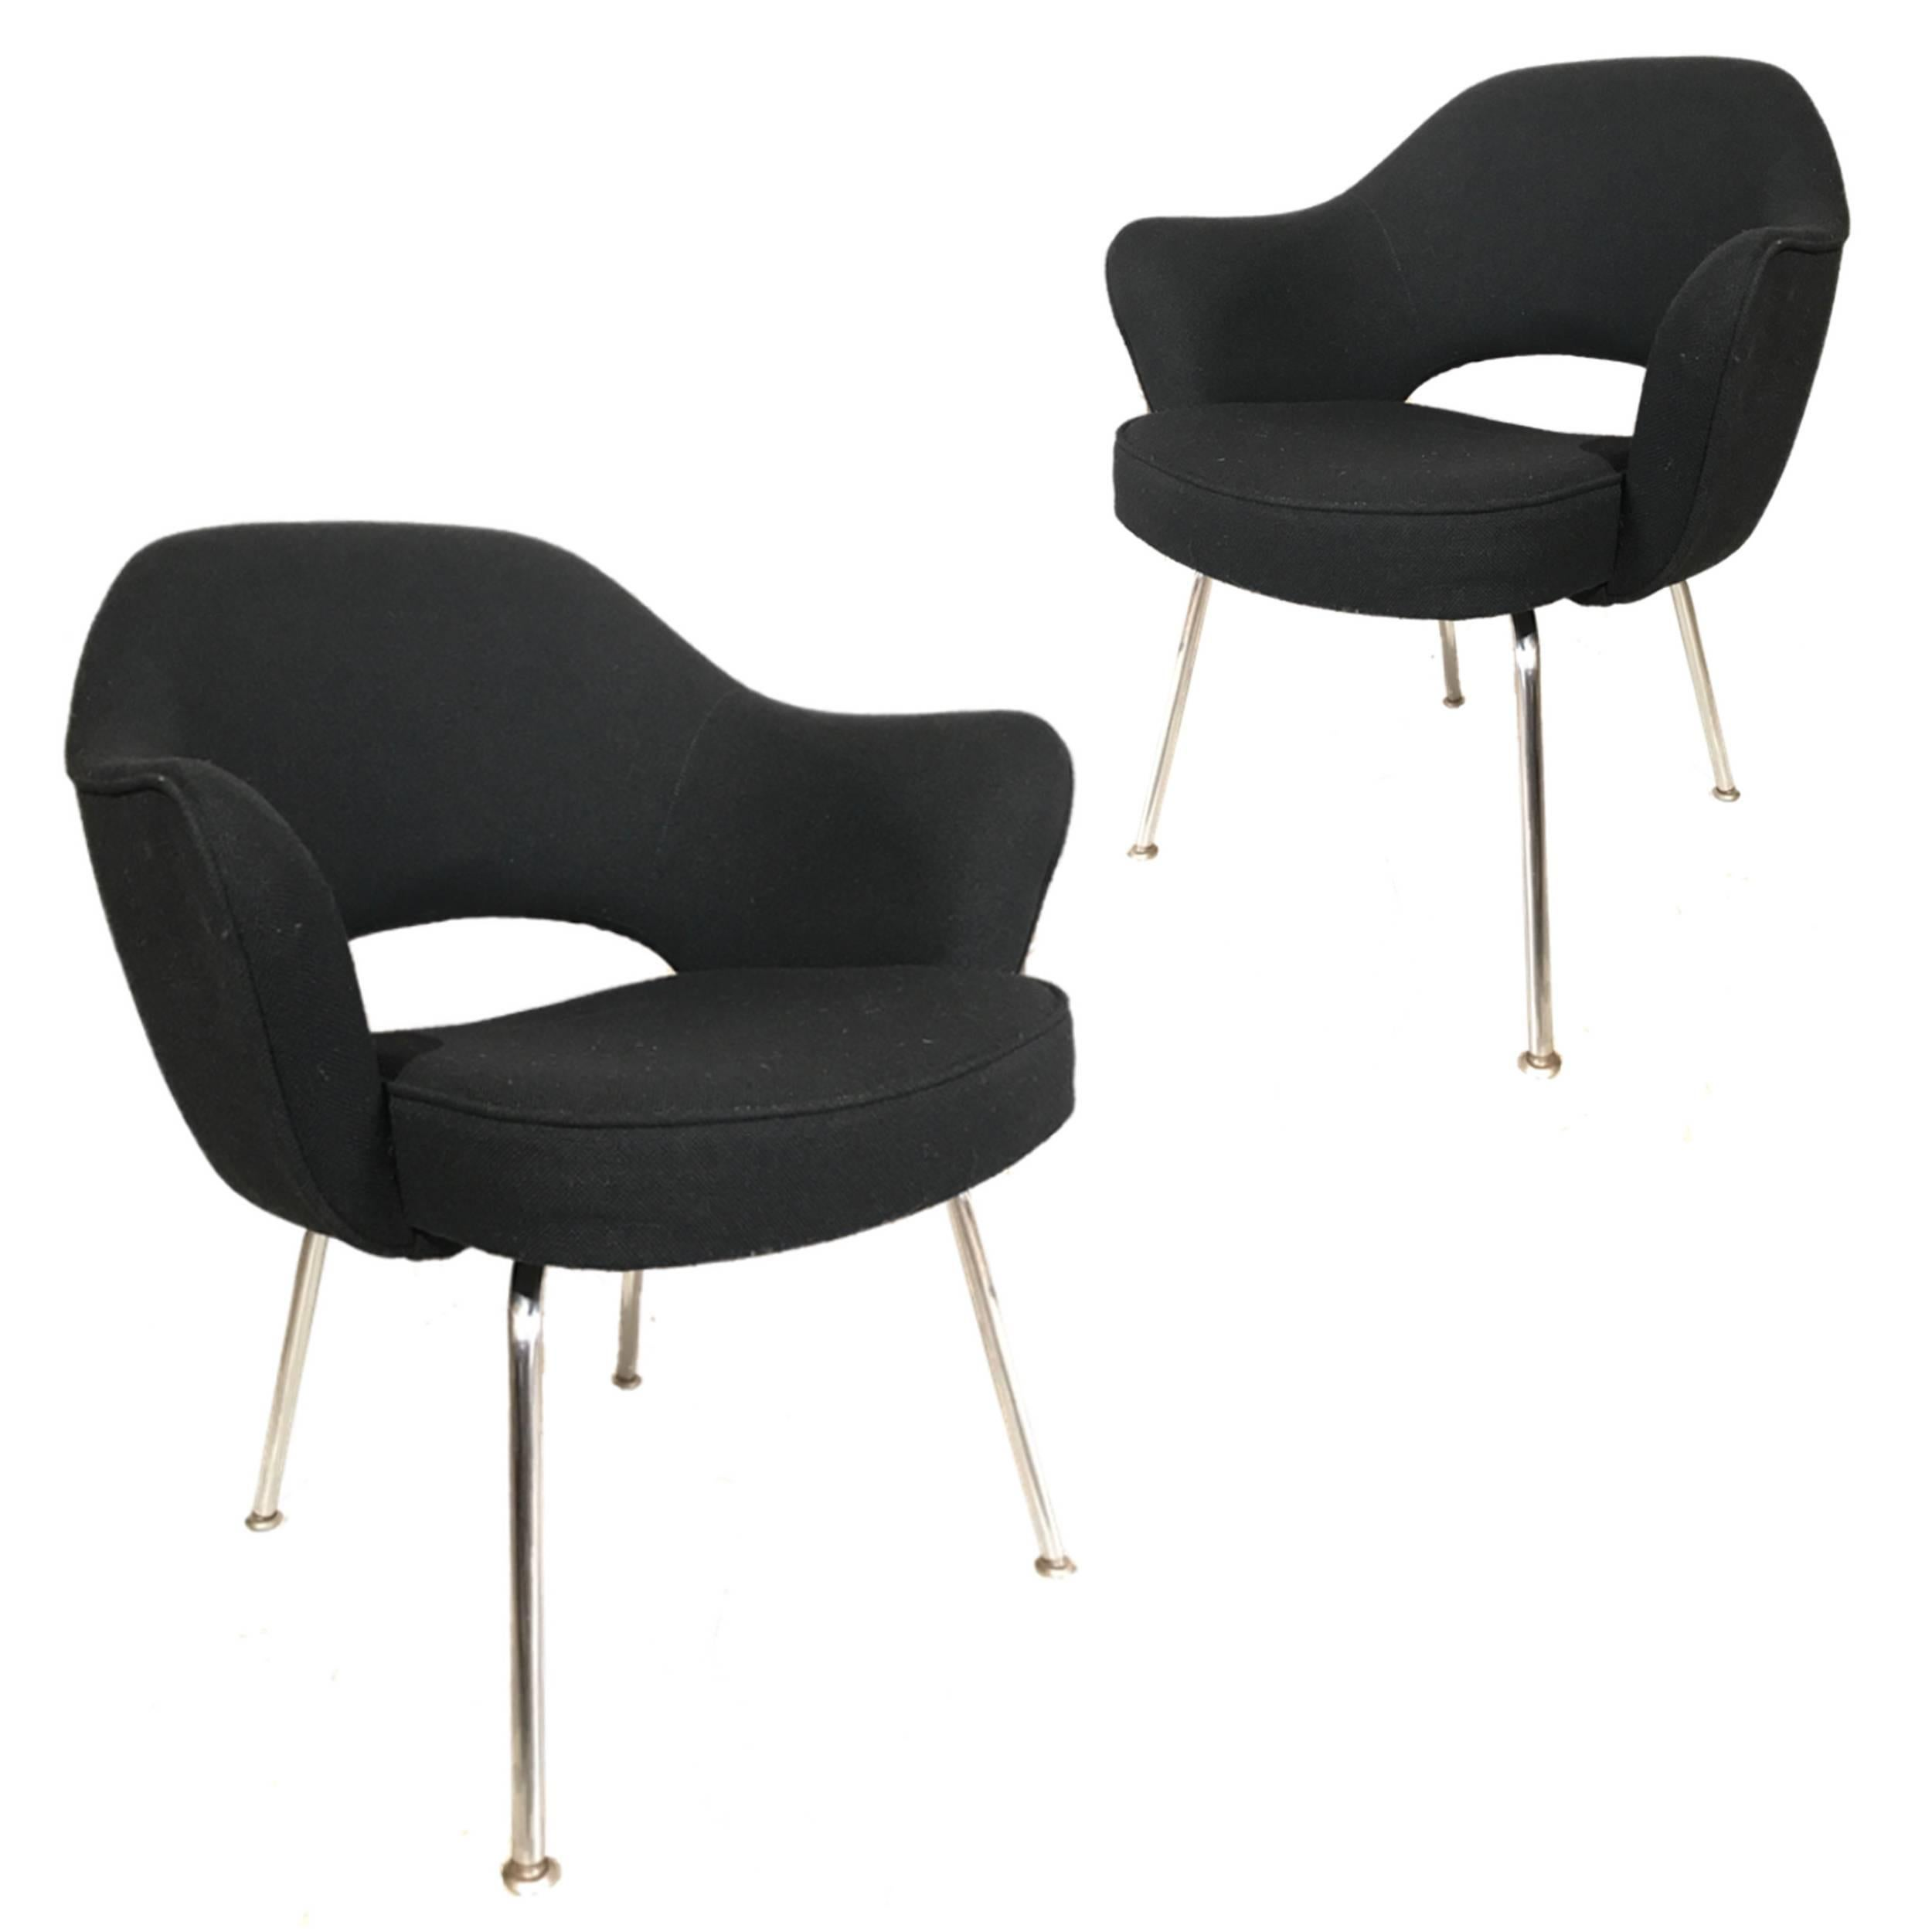 Mid Century Modern Knoll Eero Saarinen Executive Armchairs In Knoll Black  Upholstery For Sale